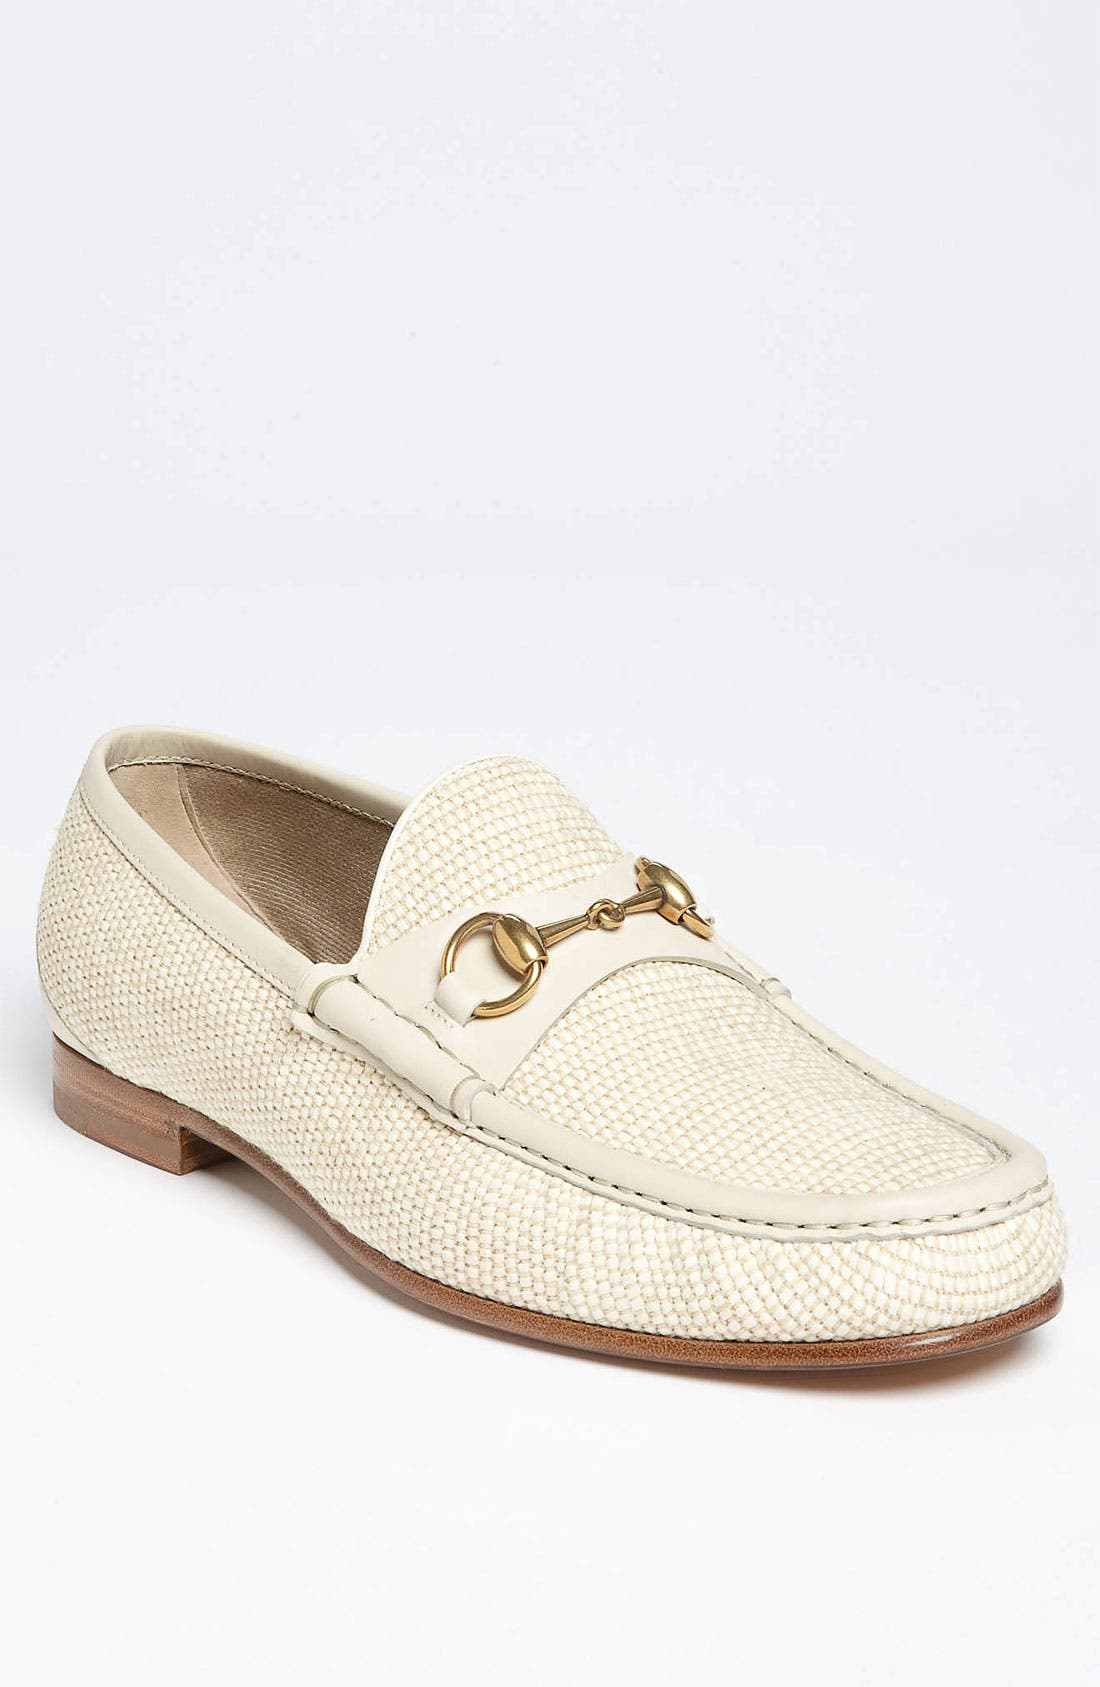 Main Image - Gucci 'Roos' Straw Bit Loafer